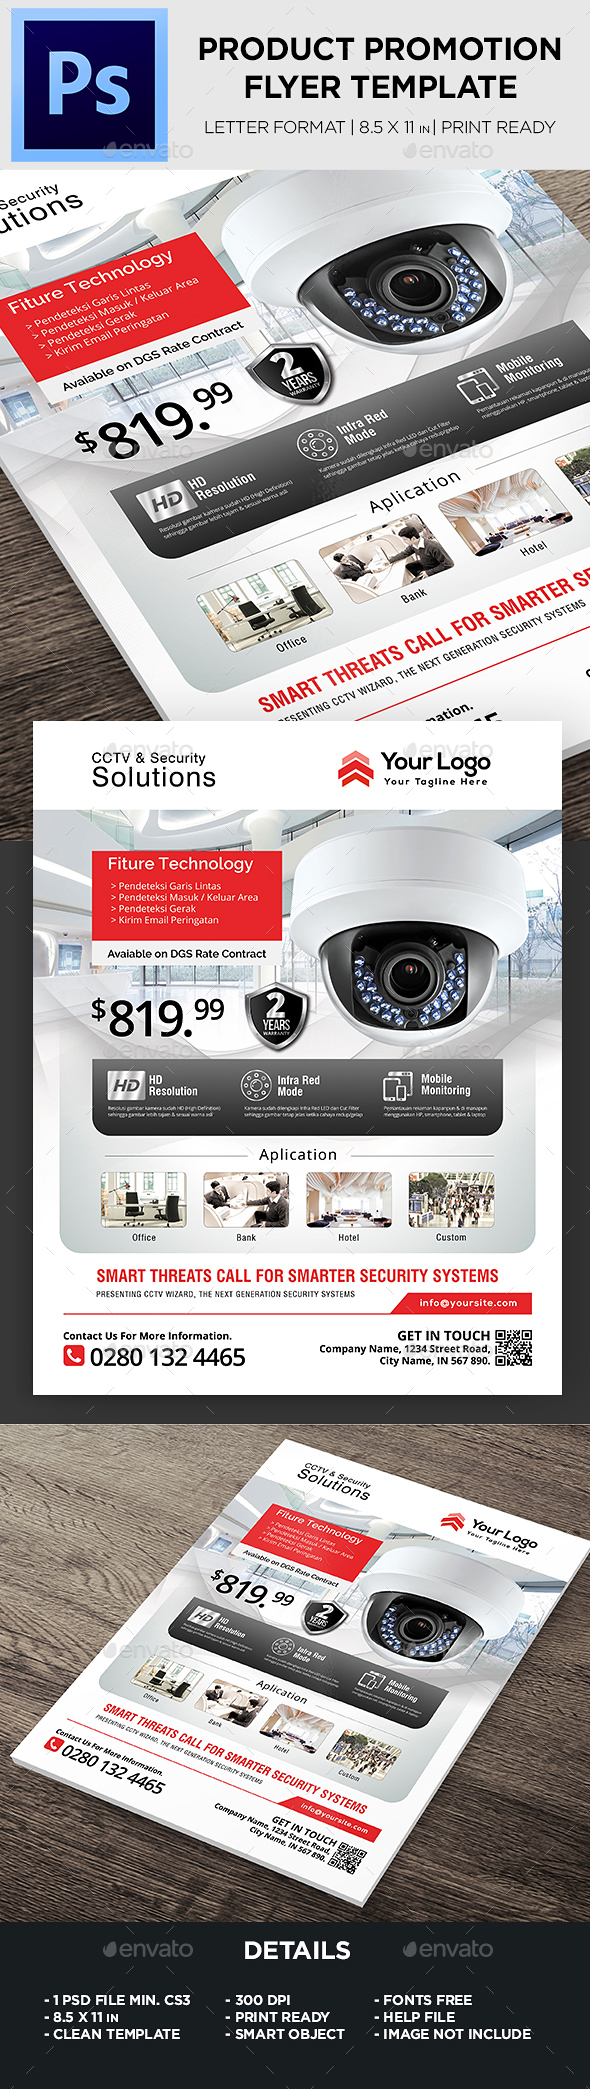 Product Flyer / CCTV - Corporate Flyers